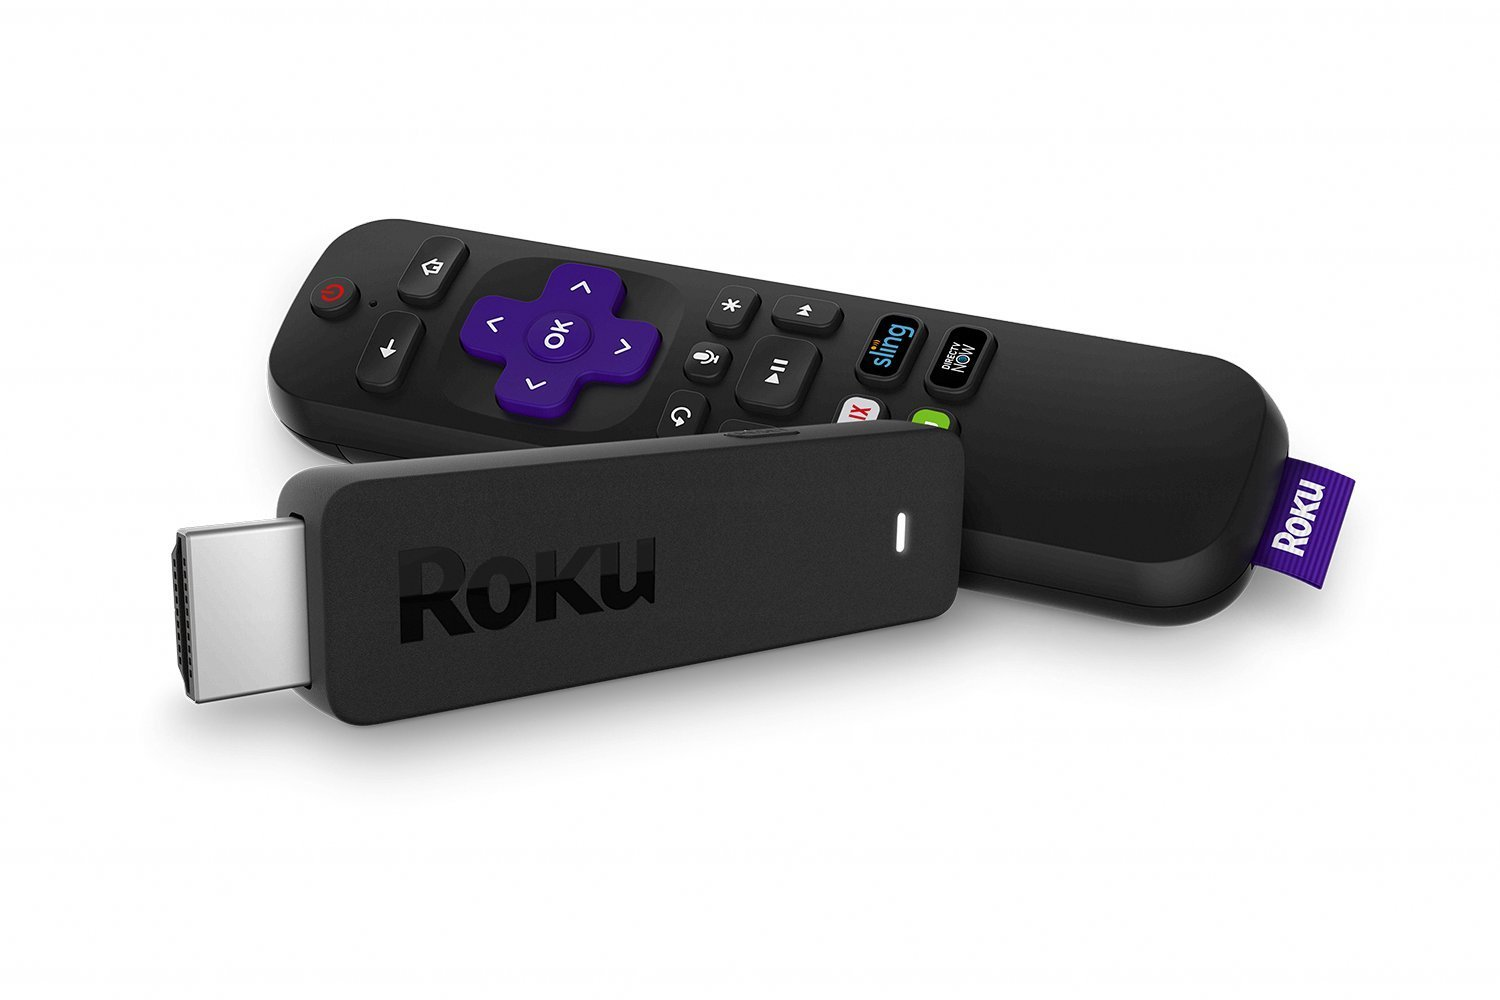 Roku Streaming Stick | Portable, Power-Packed Player with Voice Remote with TV Power and Volume (2017) (Renewed) by Roku